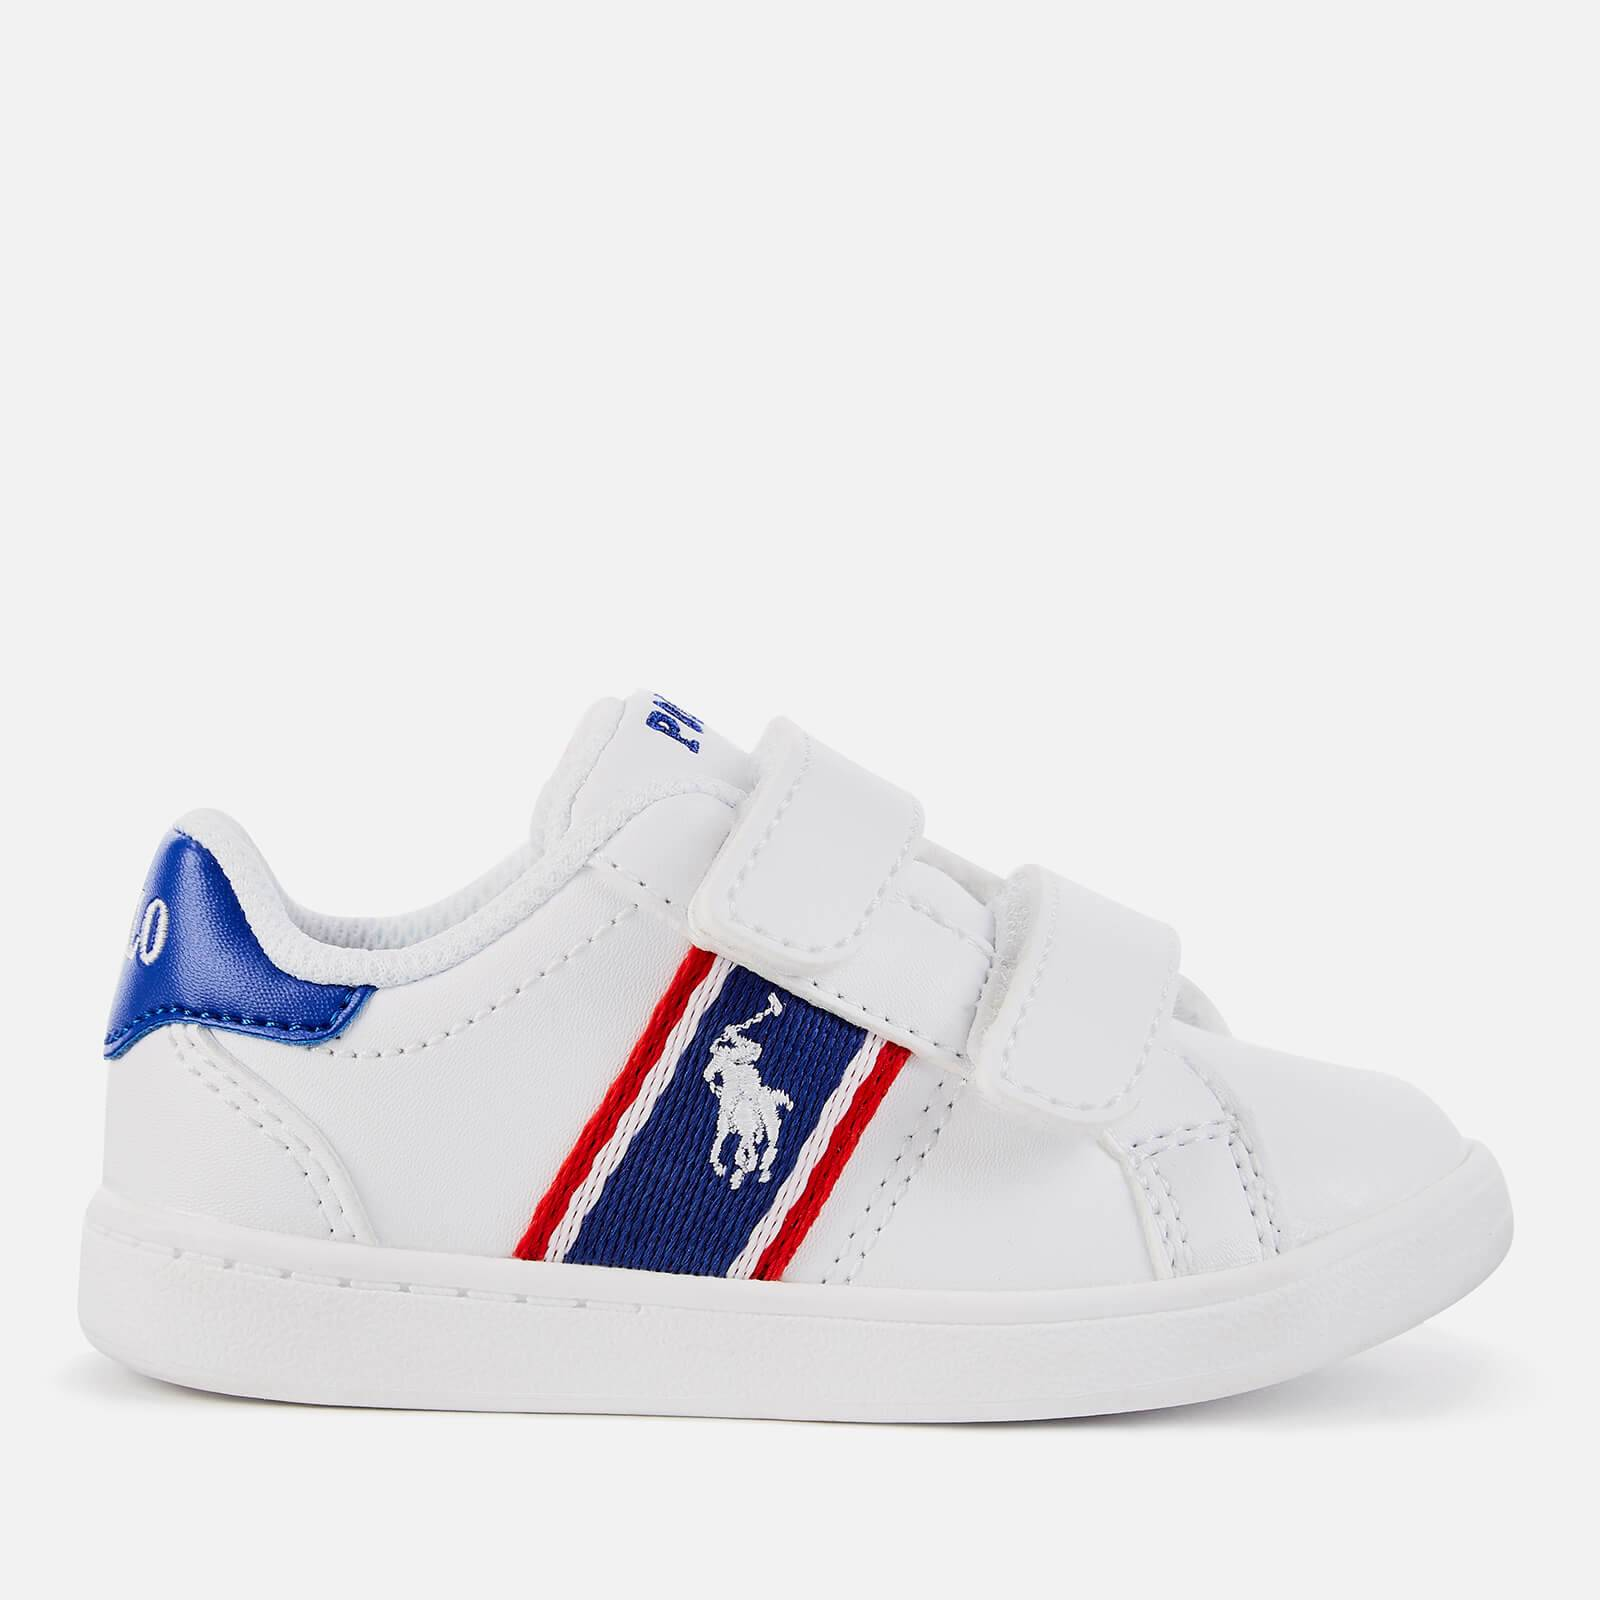 Ralph Lauren Polo Ralph Lauren Toddlers' Quigley Ez Velcro Trainers - White/Royal Red/White PP - UK 4 Toddler/EU 20 - White